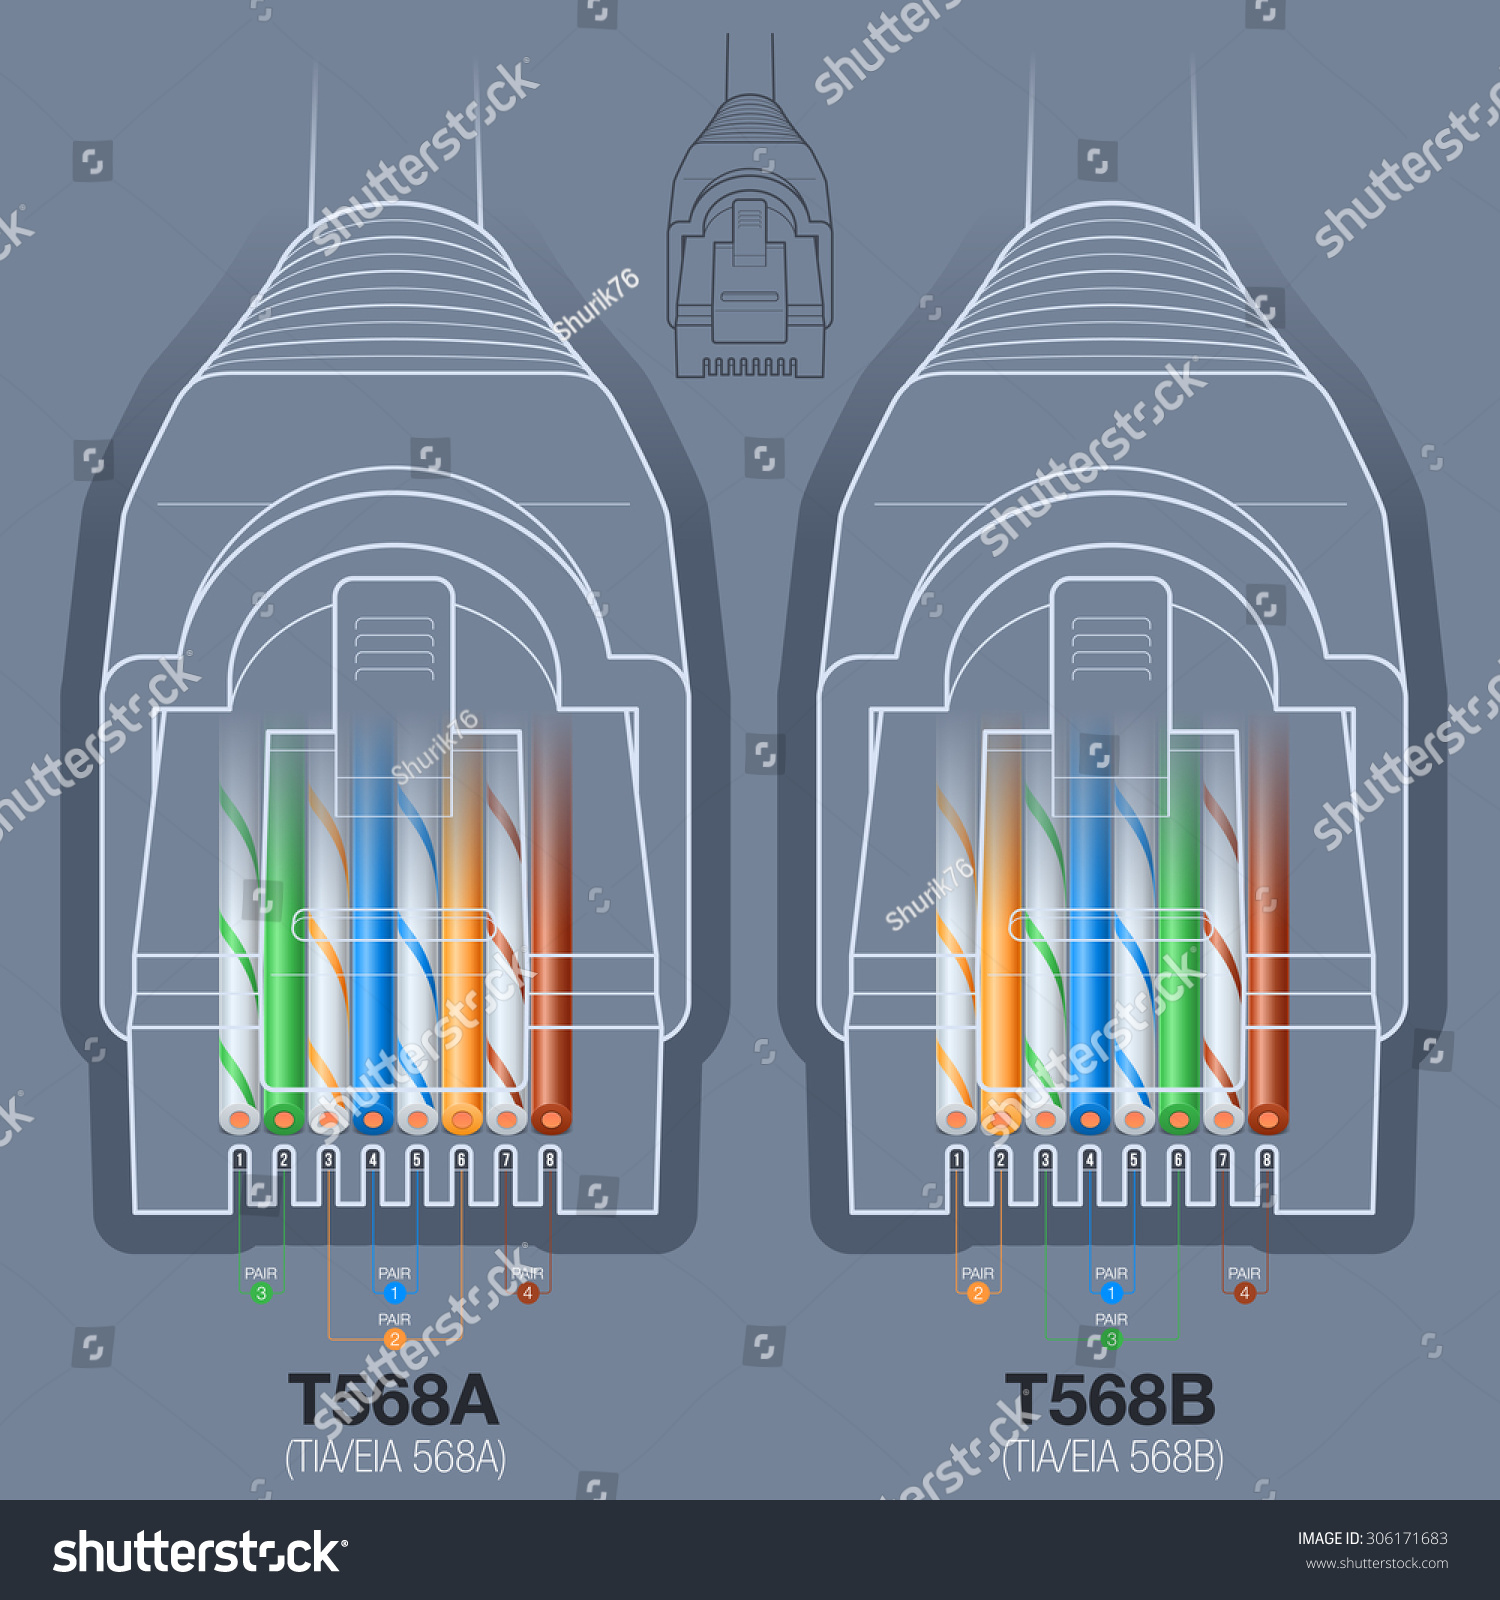 For The Cat5 Cable Rj45 Jack Wiring Diagram Free Download Rj45 Network Connector T568at568b Wiring Diagram Stock